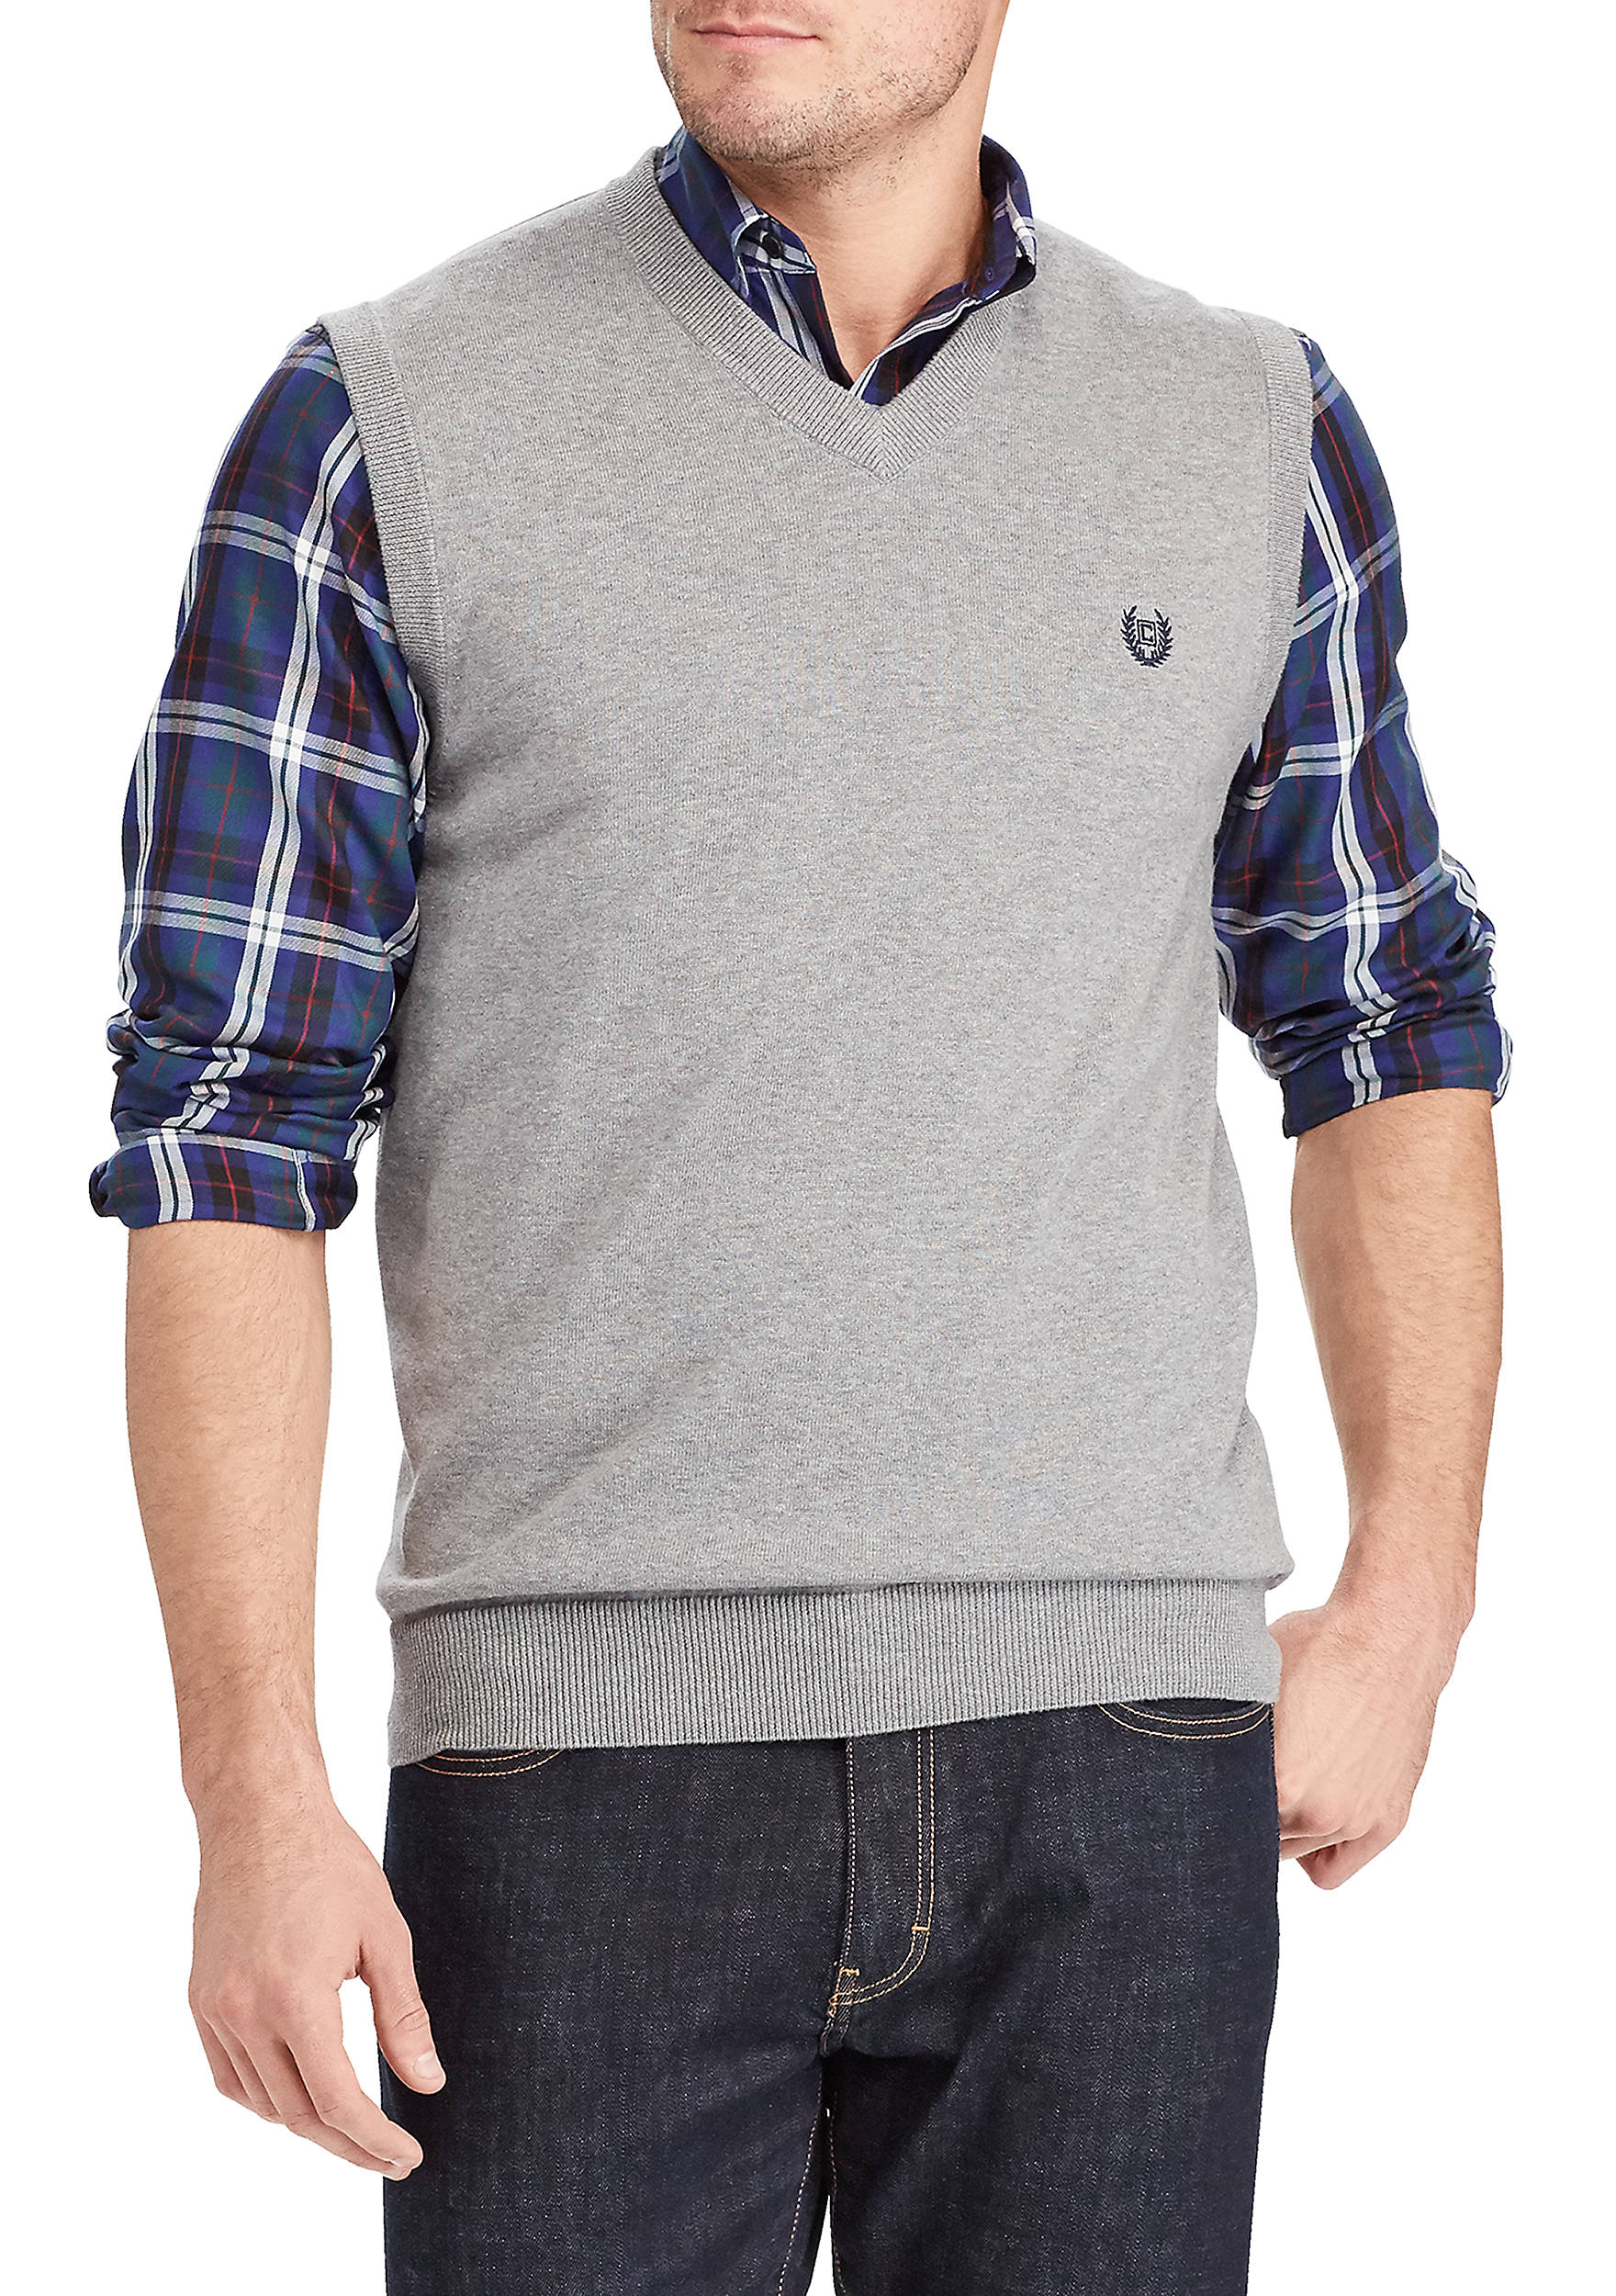 Chaps Cotton Sweater Vest | belk